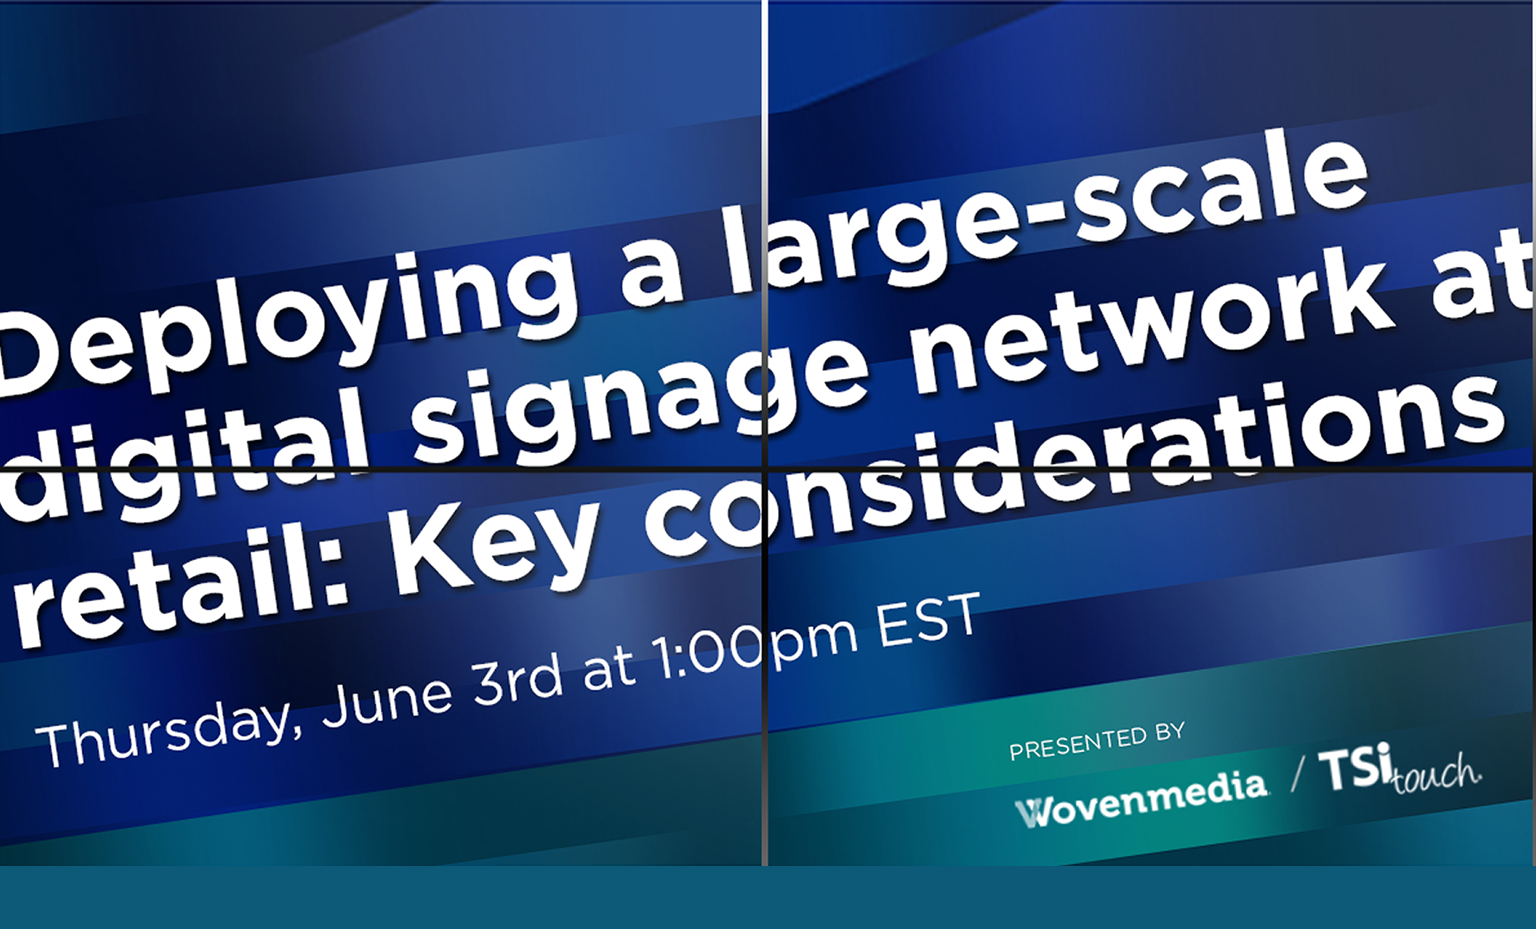 Deploying a large-scale Digital Signage Network at retail